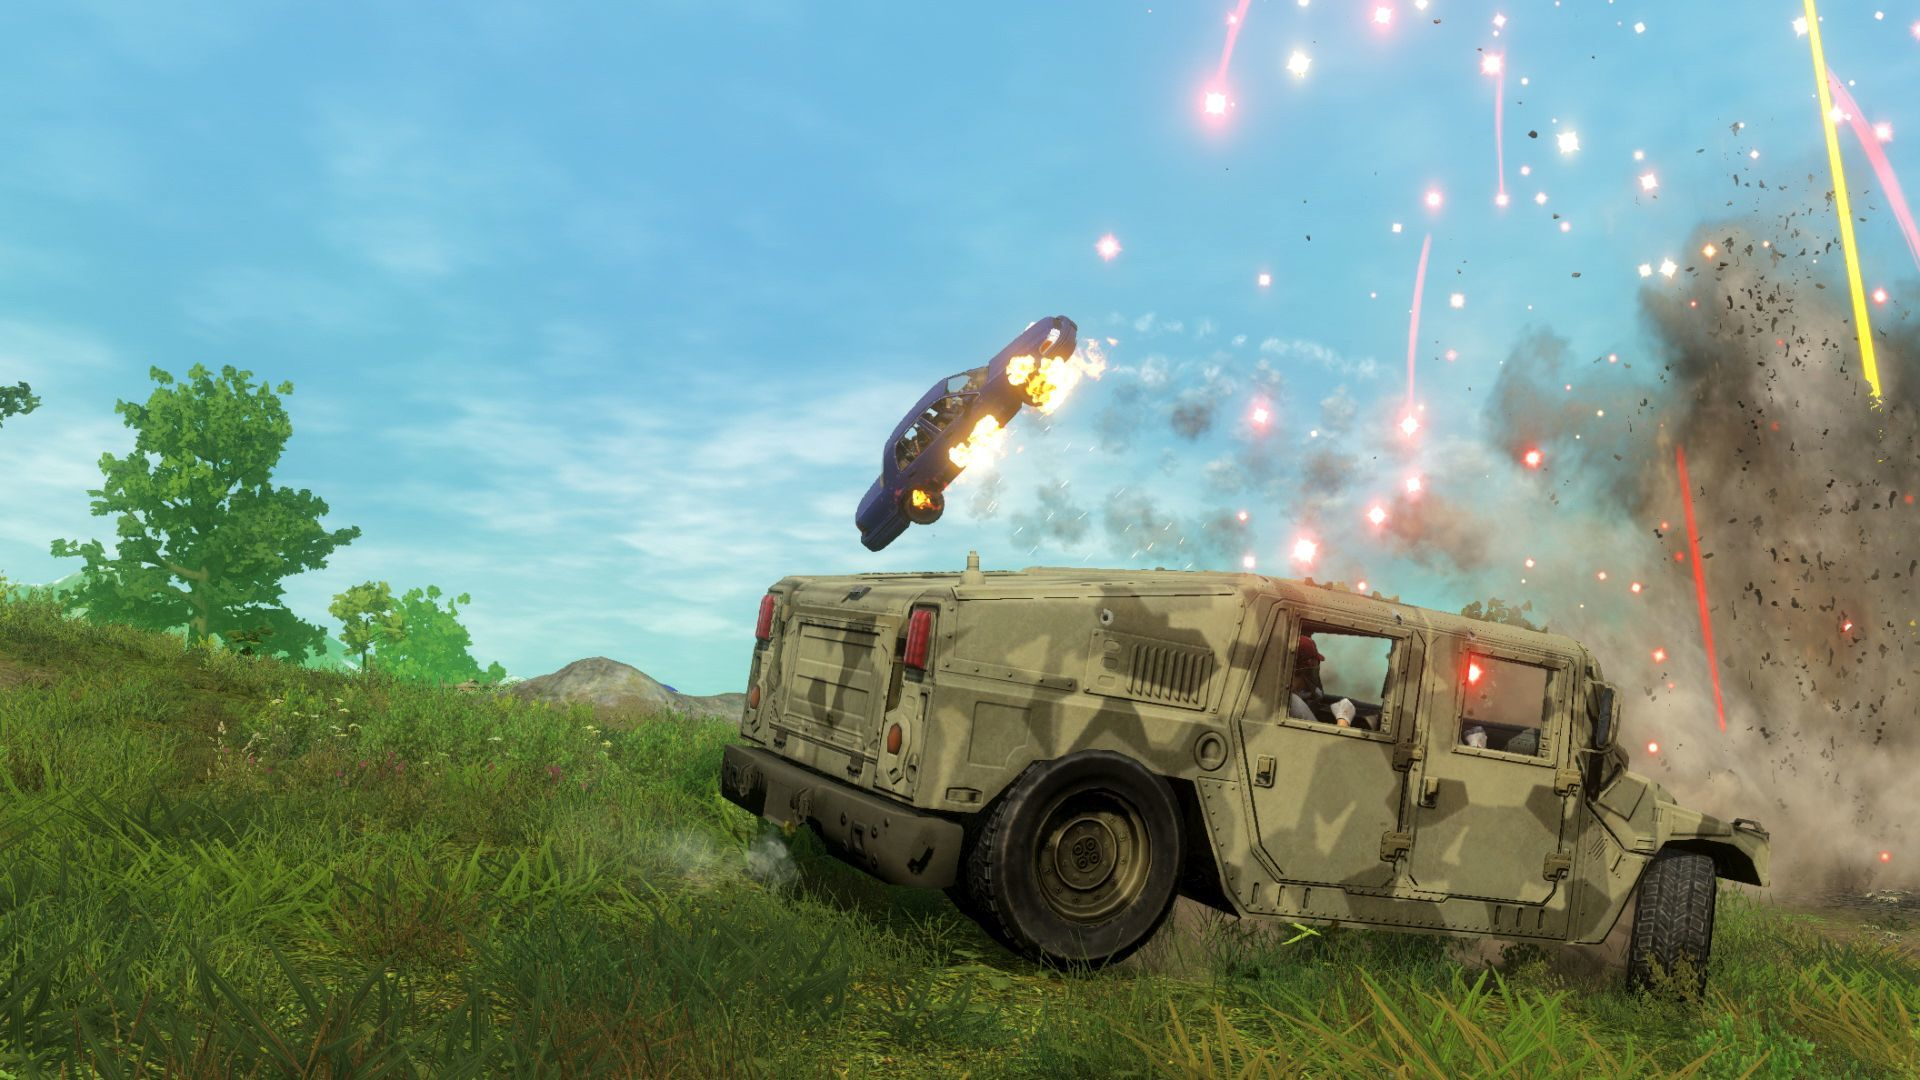 H1Z1 goes free-to-play - Z1 Battle Royale - Gamereactor